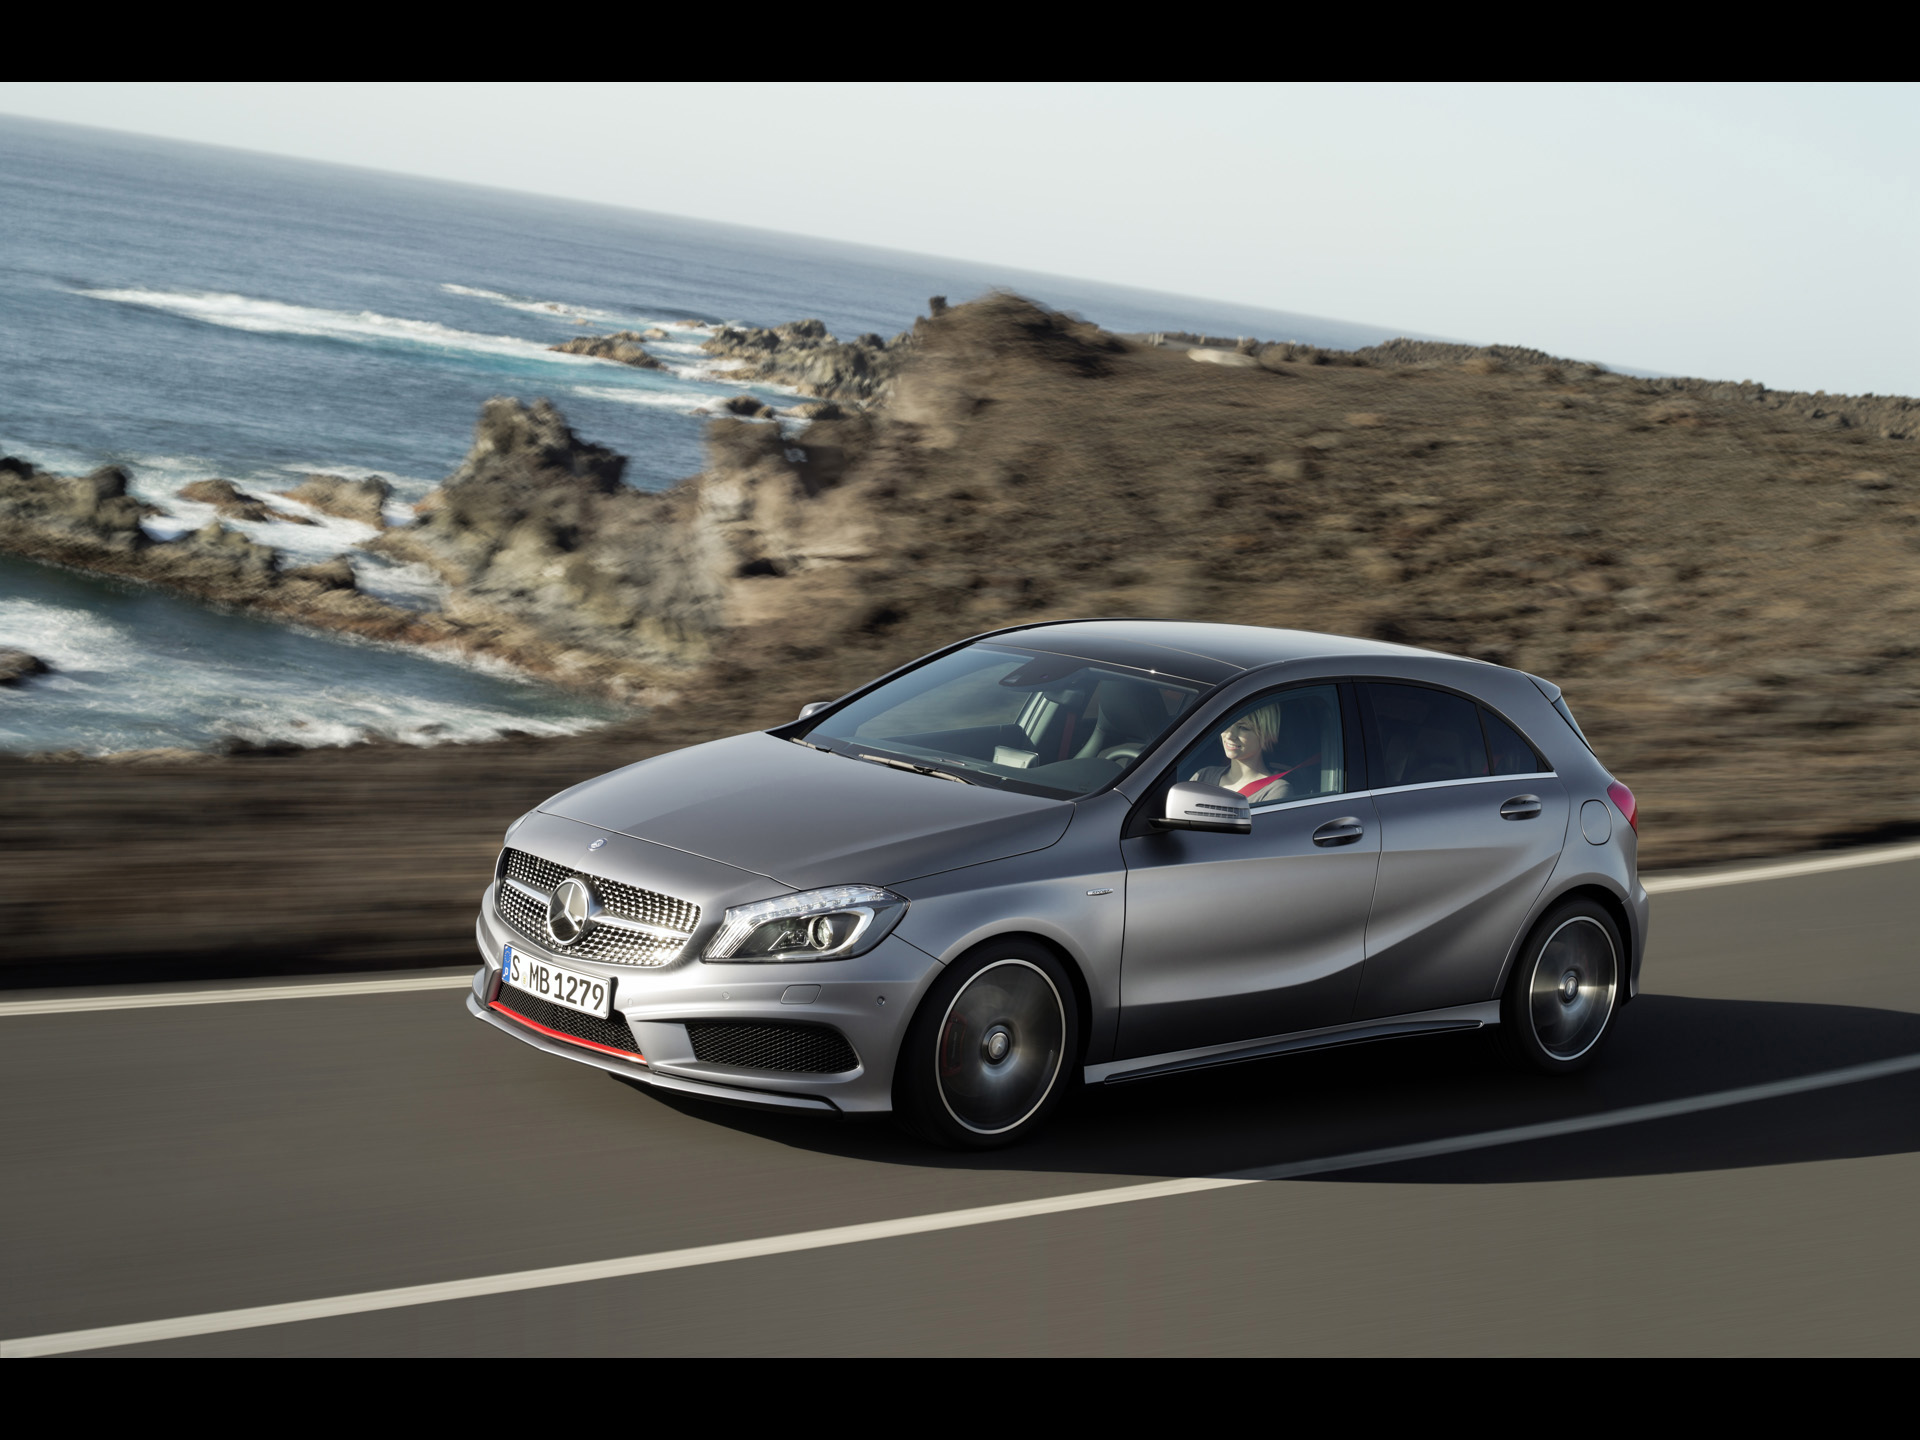 Mercedes-benz a-klasse photo - 3